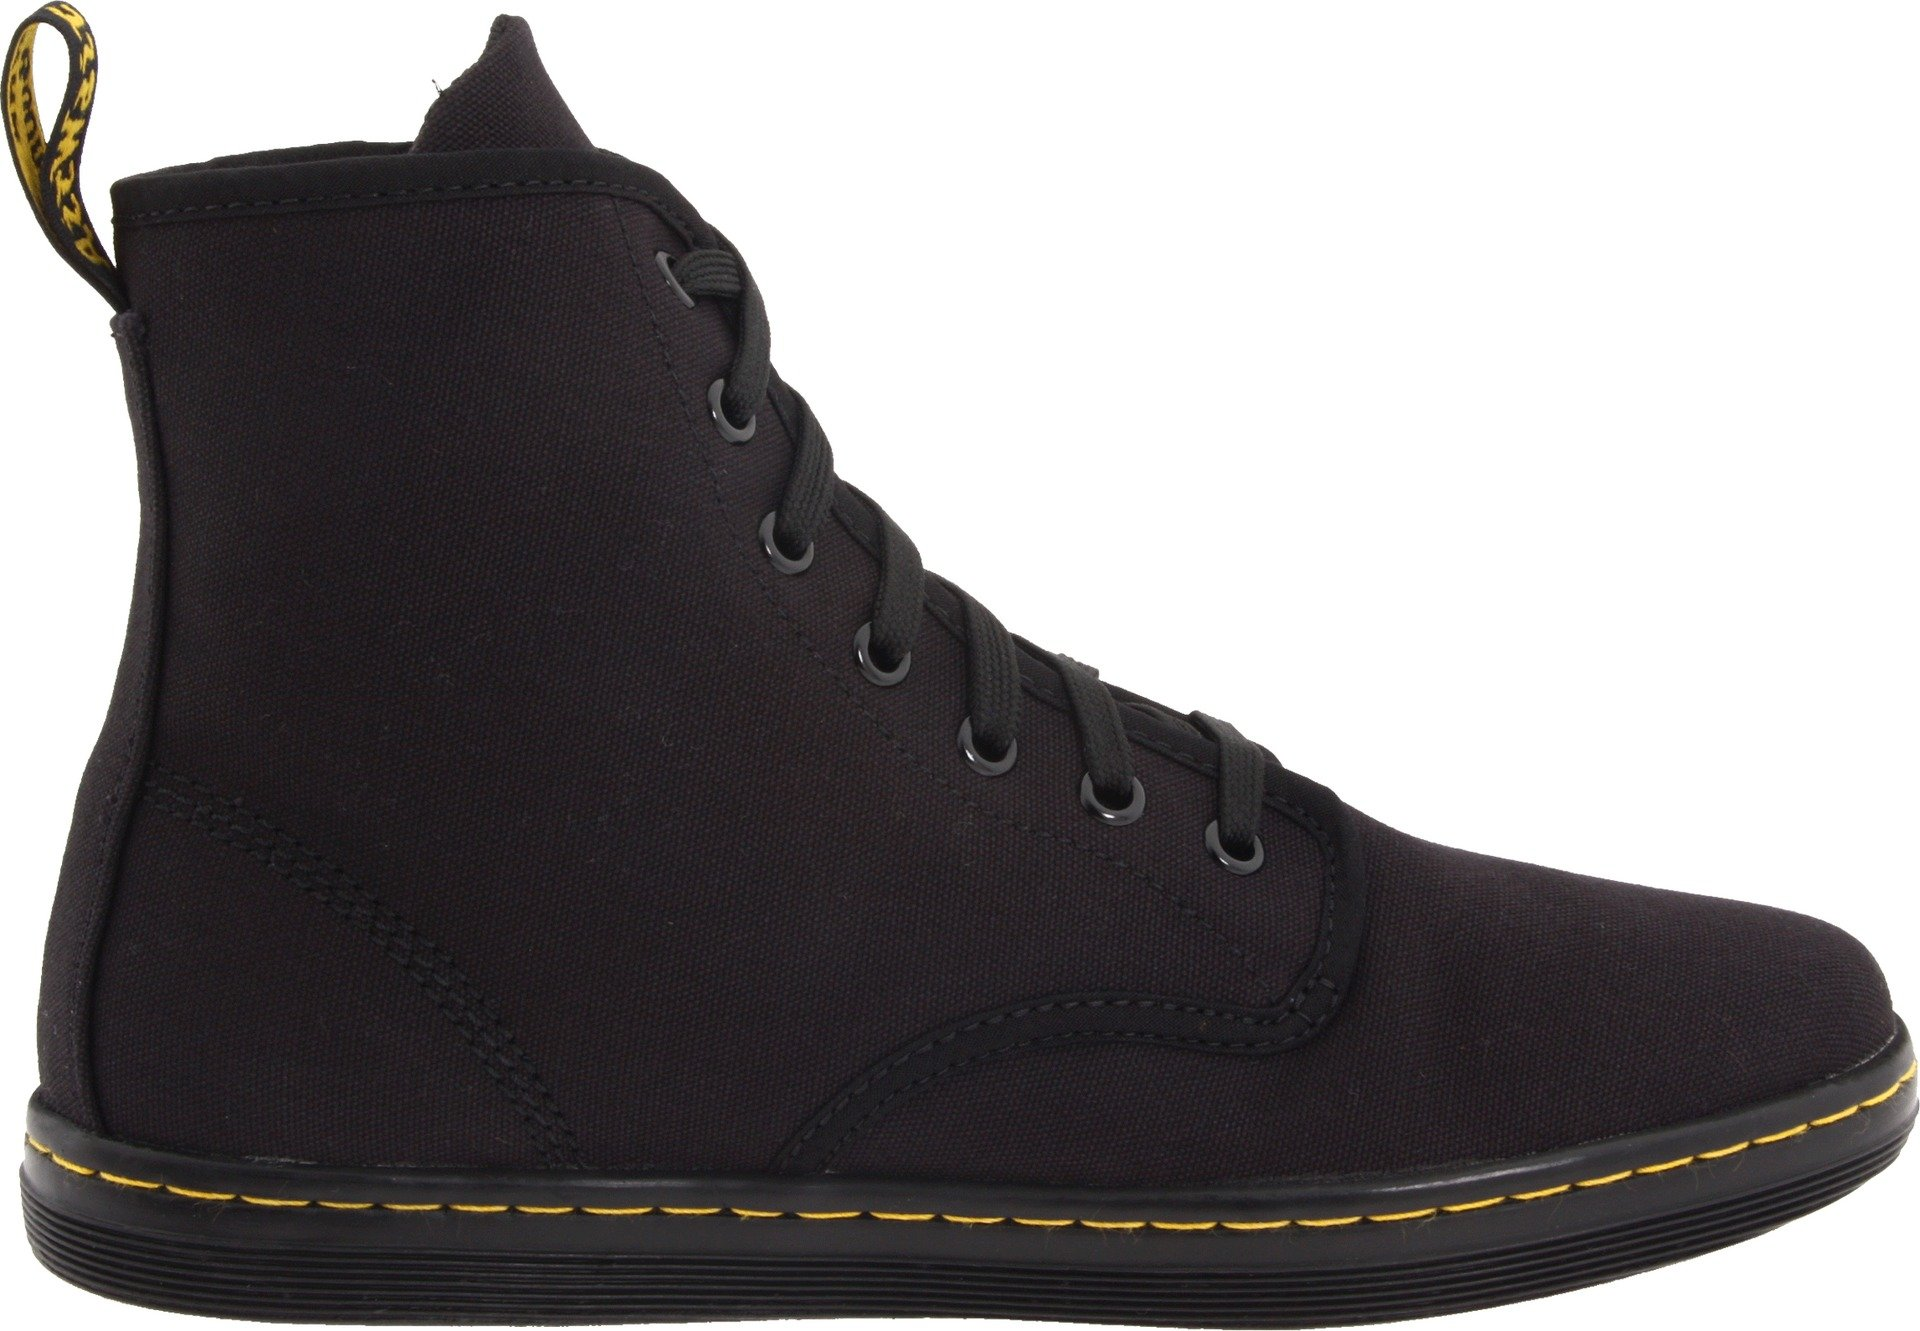 Dr. Martens Women's Shoreditch Boot,Black,5 UK (US Women's 7 M) by Dr. Martens (Image #6)